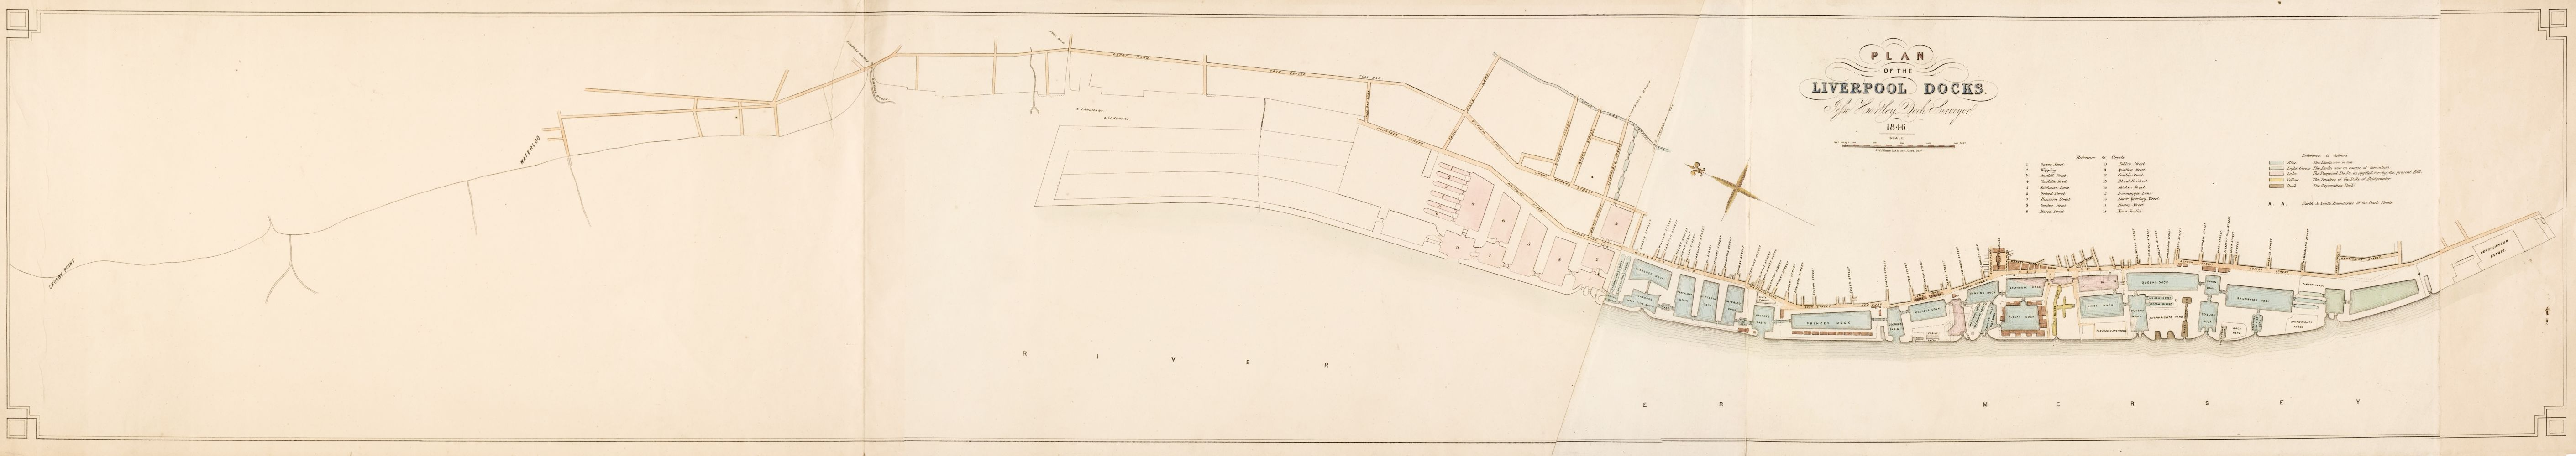 Hartley (Jesse). Plan of the Liverpool Docks, J. W. Allen, lithographer, 1846